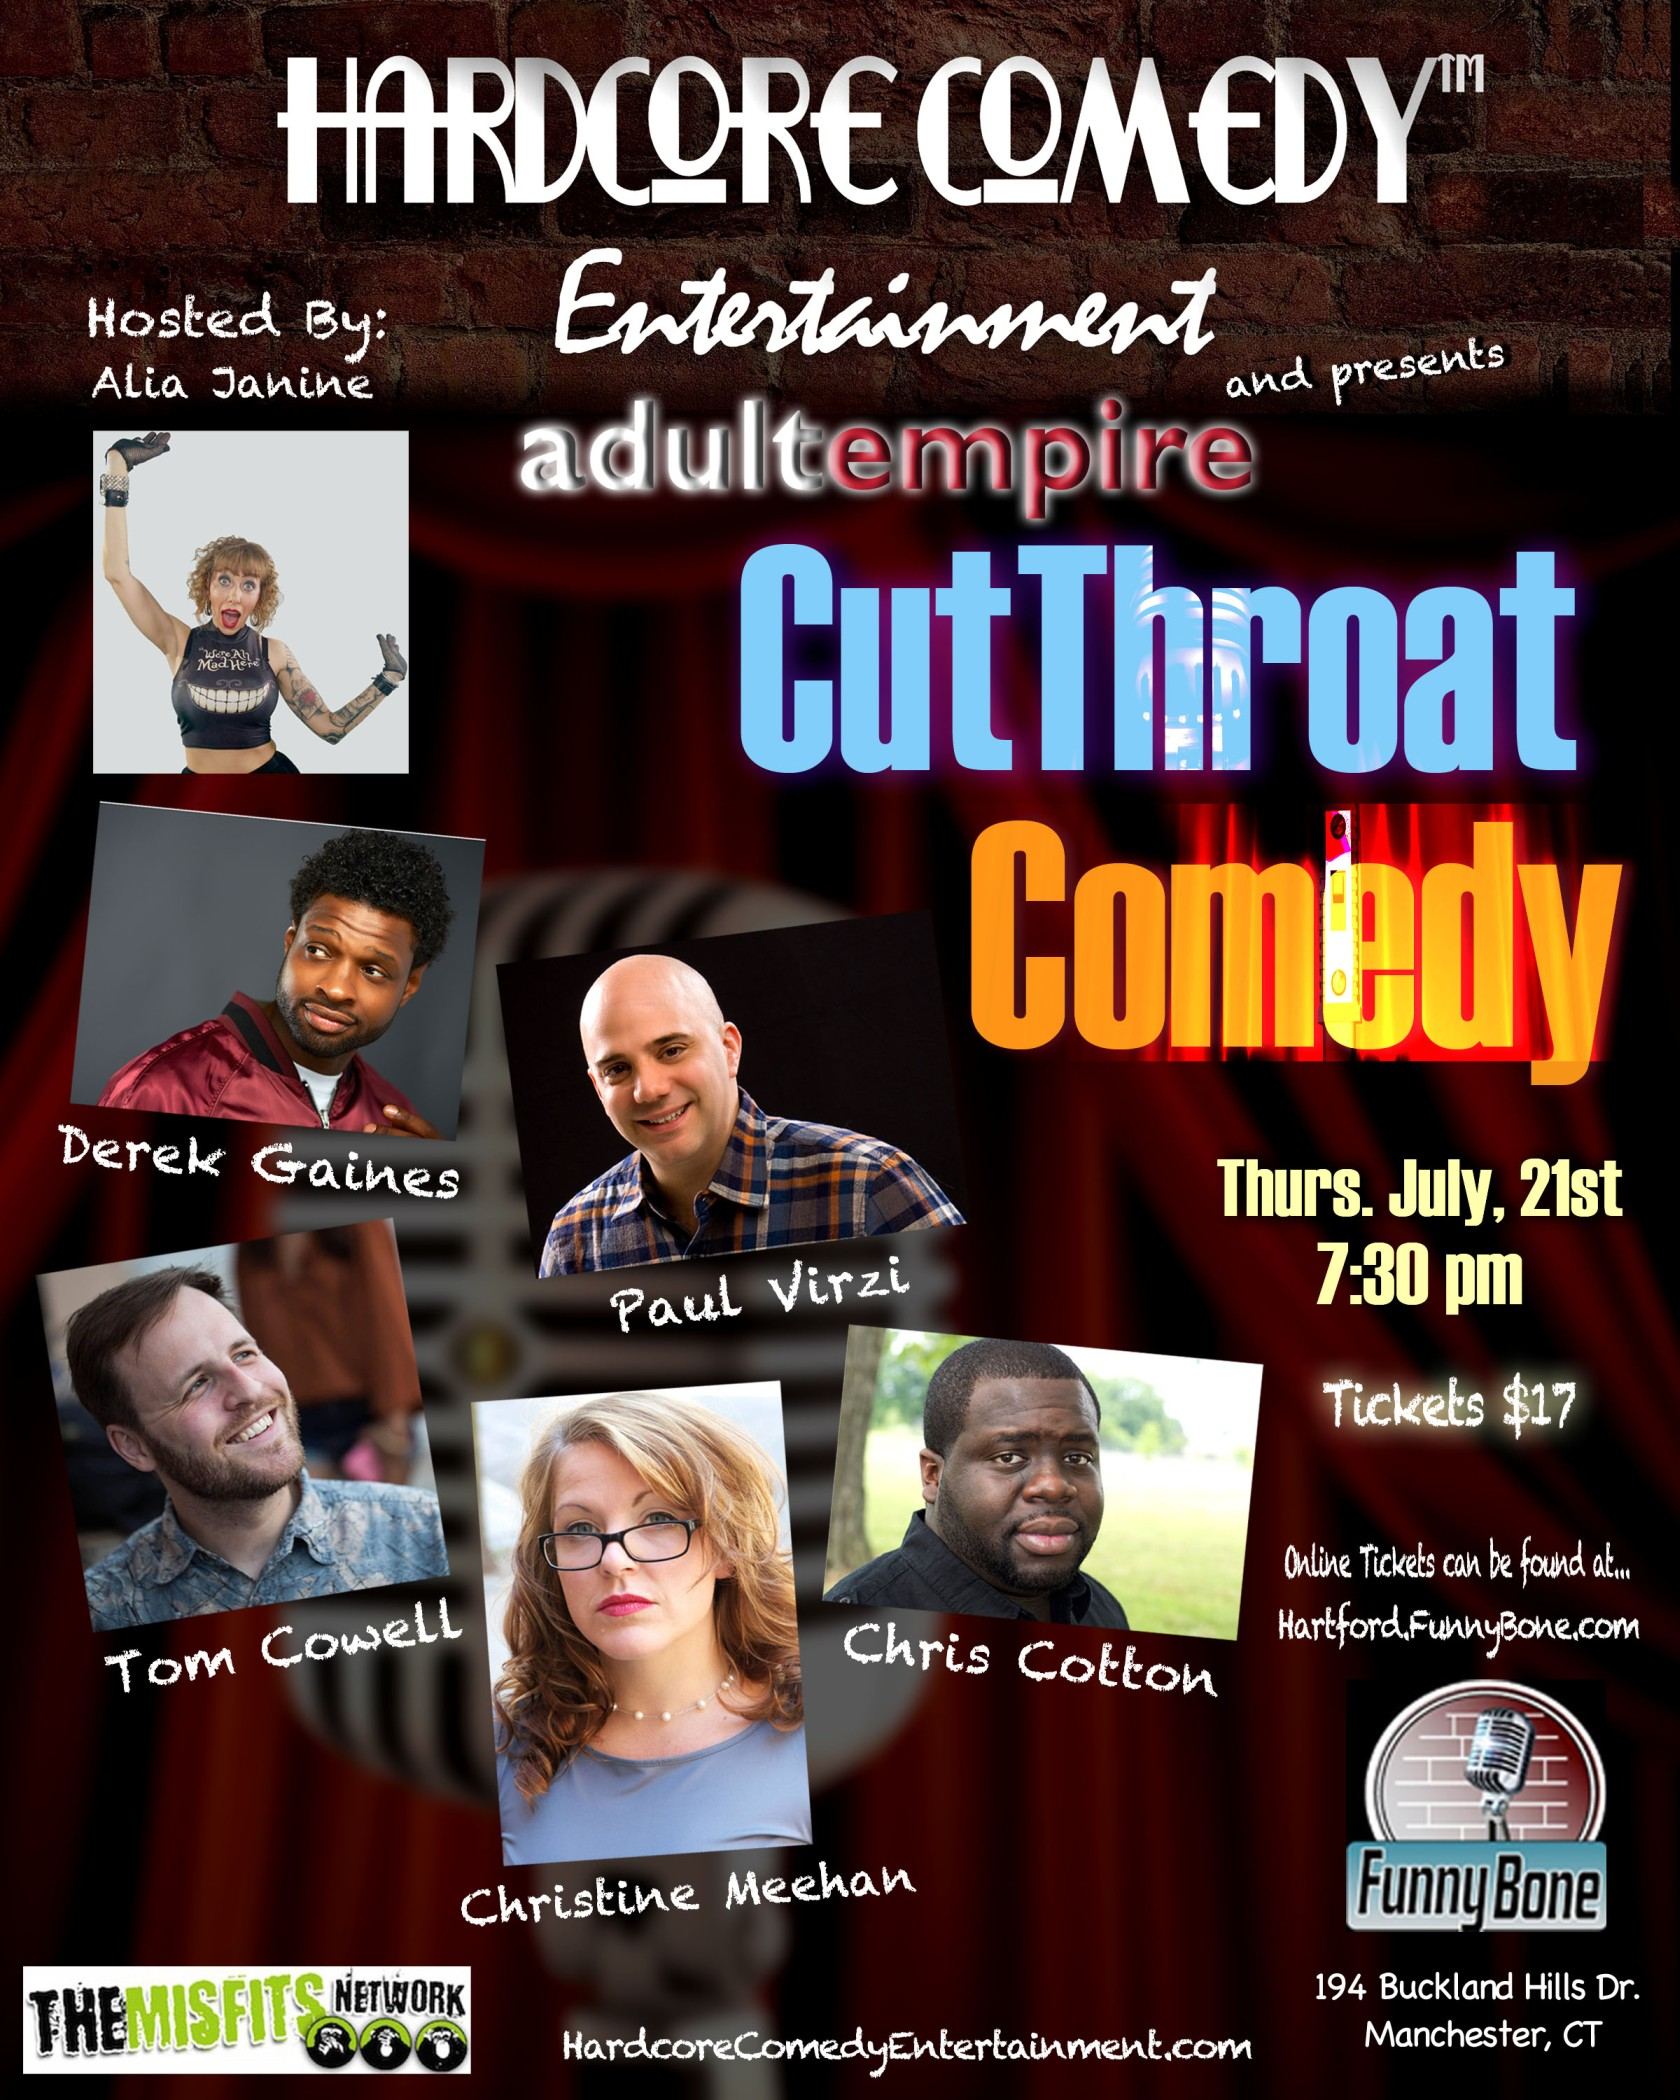 alia janine s cutthroat comedy returns in hartford ct